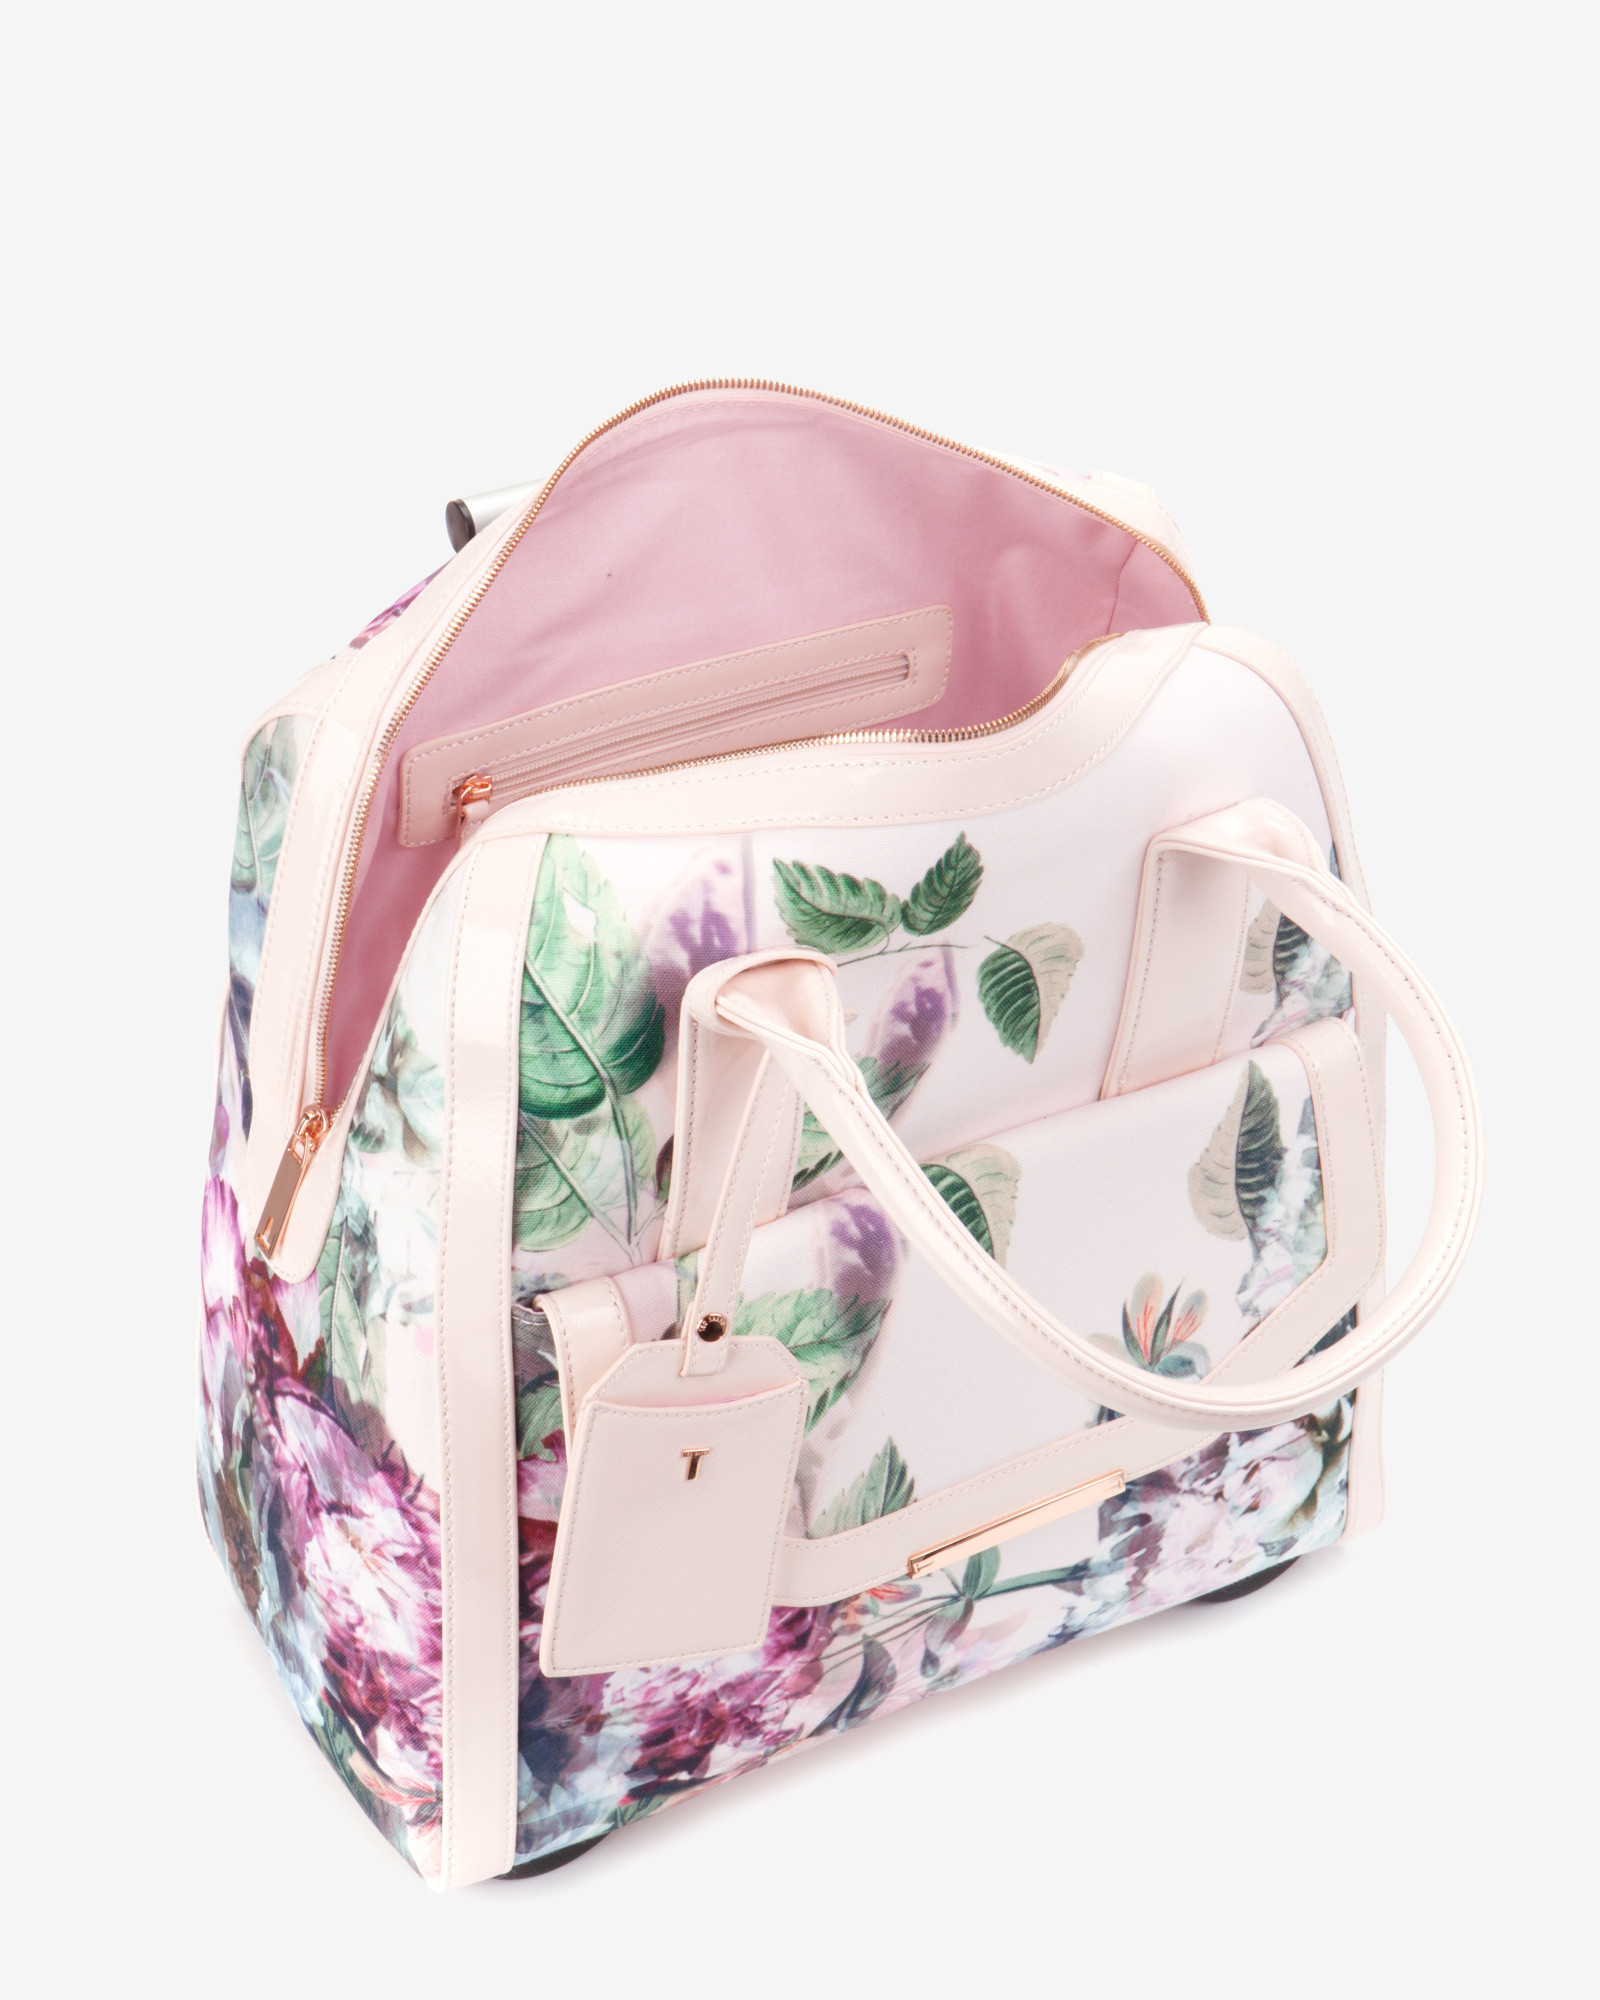 077ffd31a Ted Baker Laundry Bag Travel Set